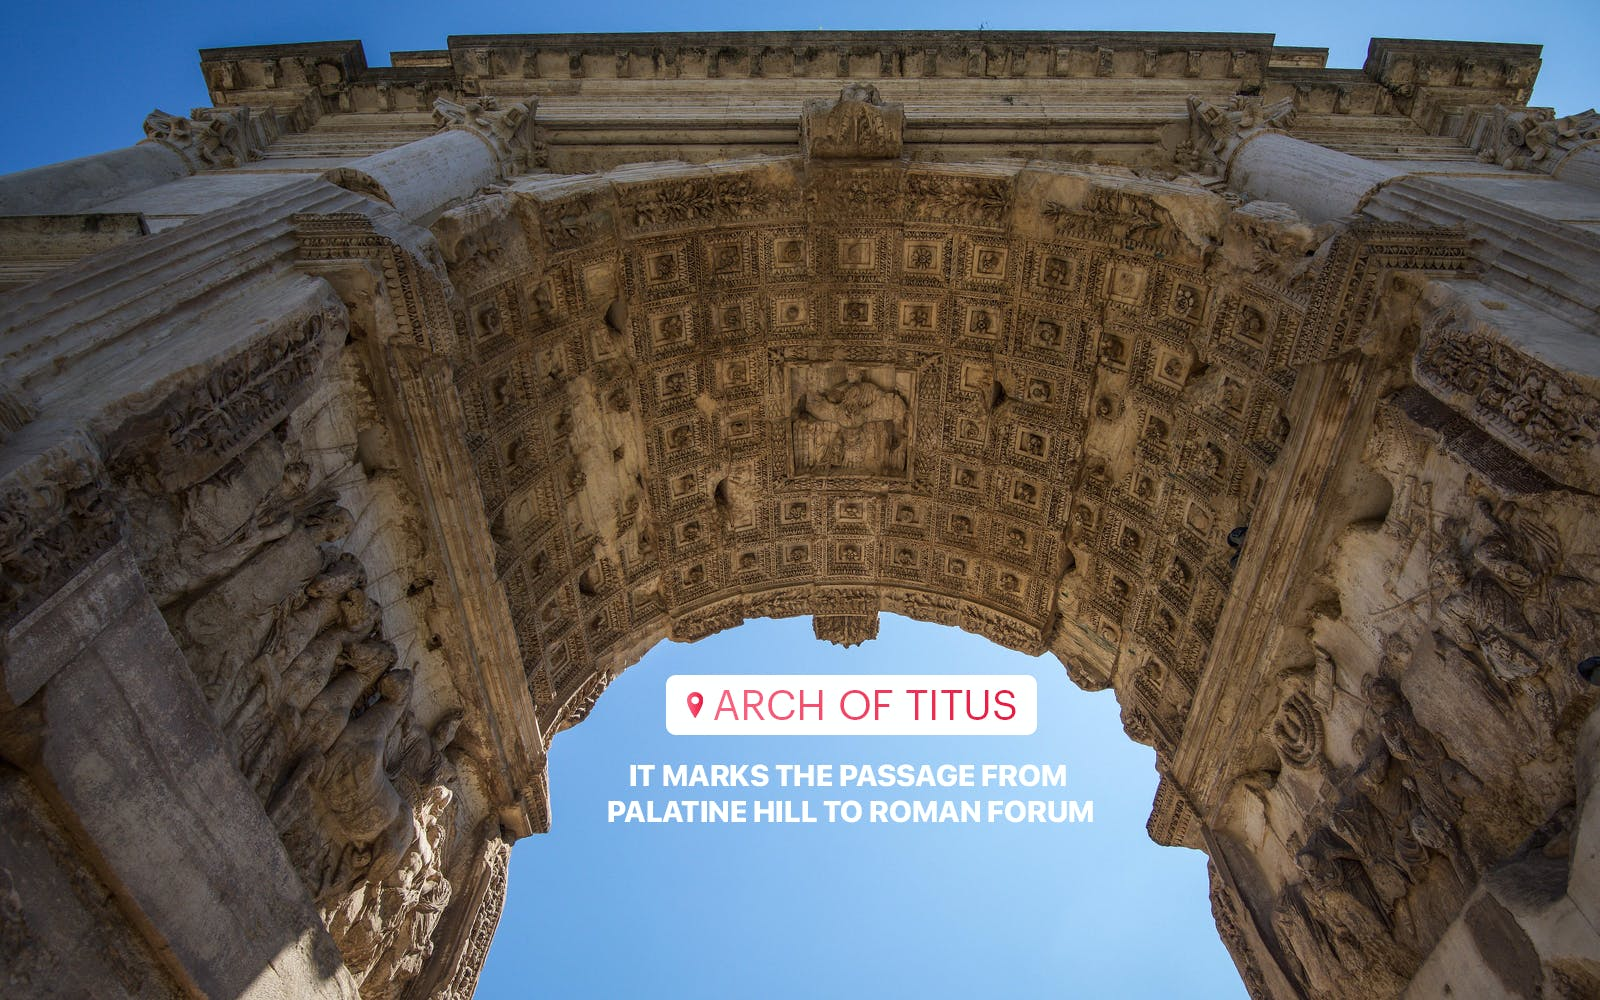 express guided tour of colosseum, vatican museums & sistine chapel-13